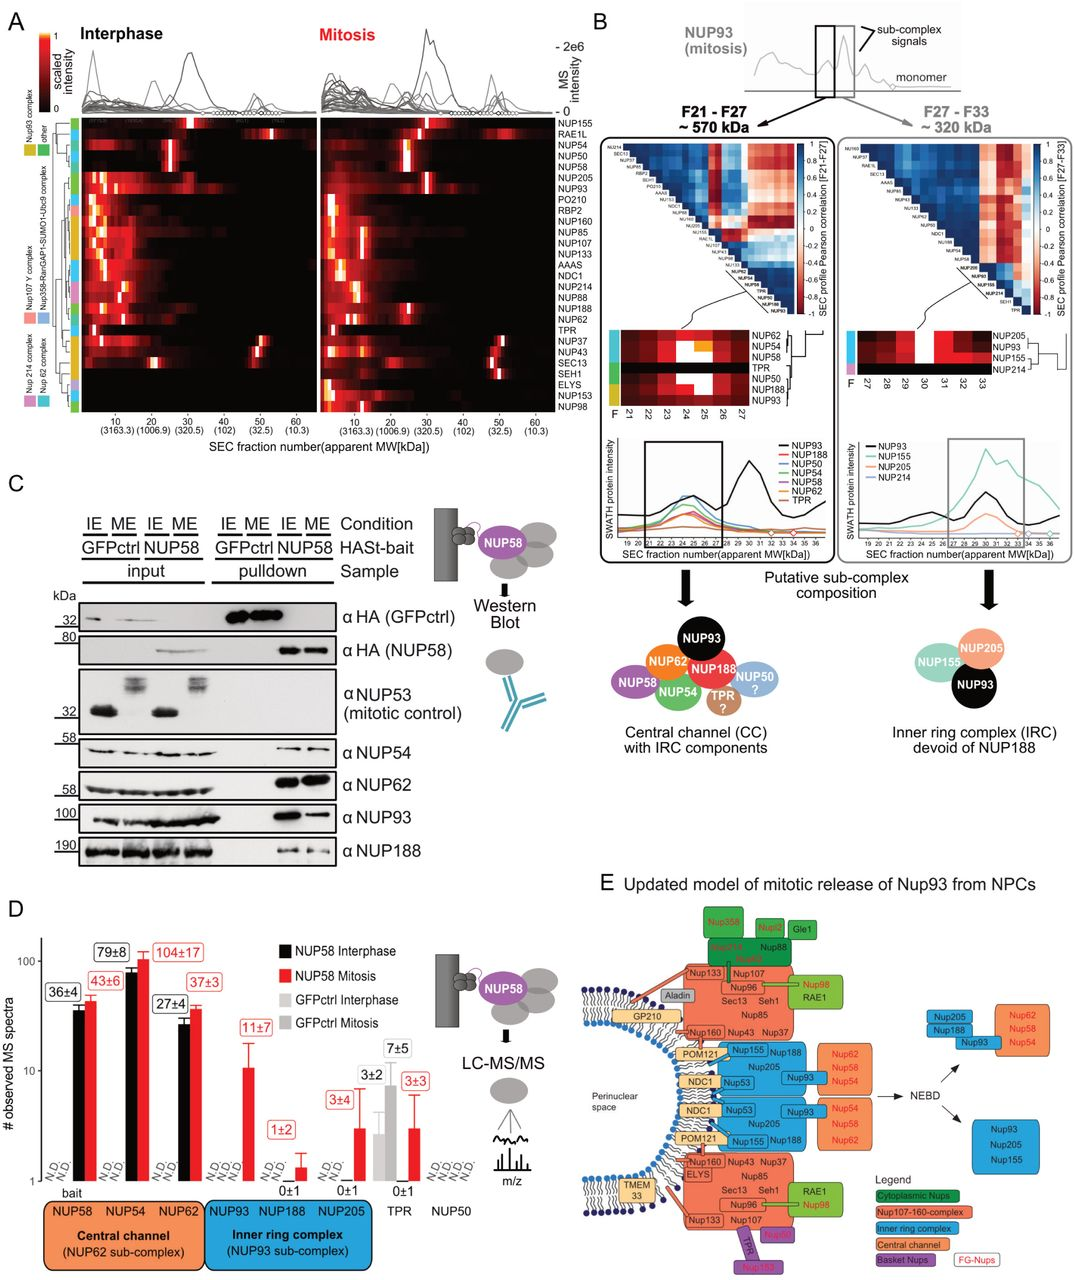 A global screen for assembly state changes of the mitotic